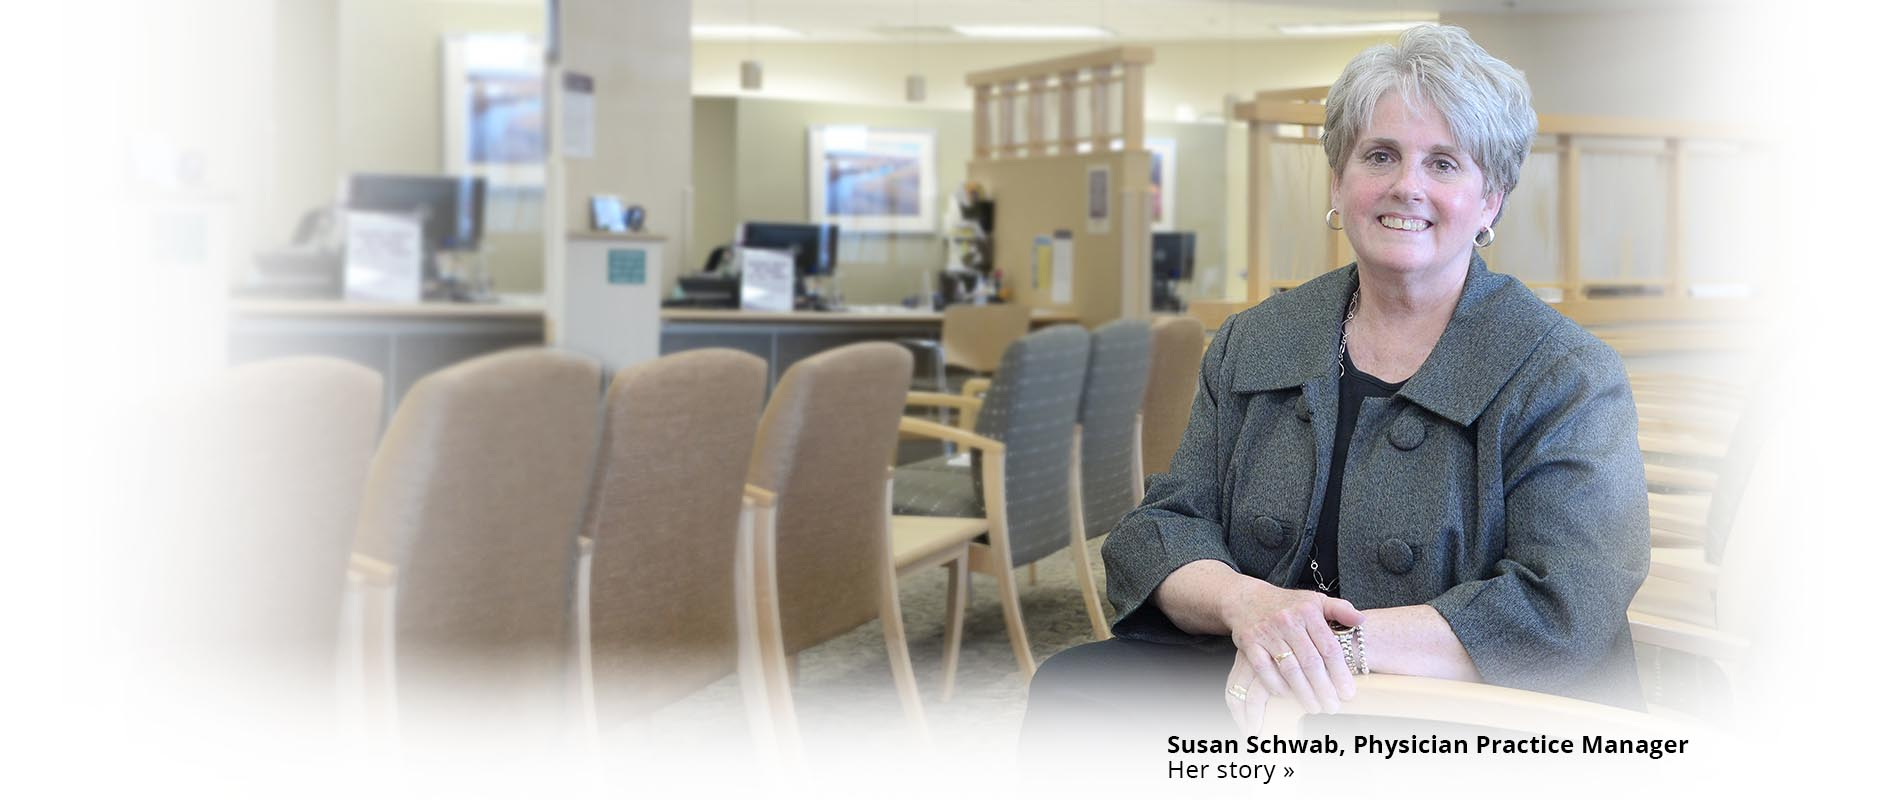 Susan Schwab, Physician Practice Manager, sitting in the practice waiting room